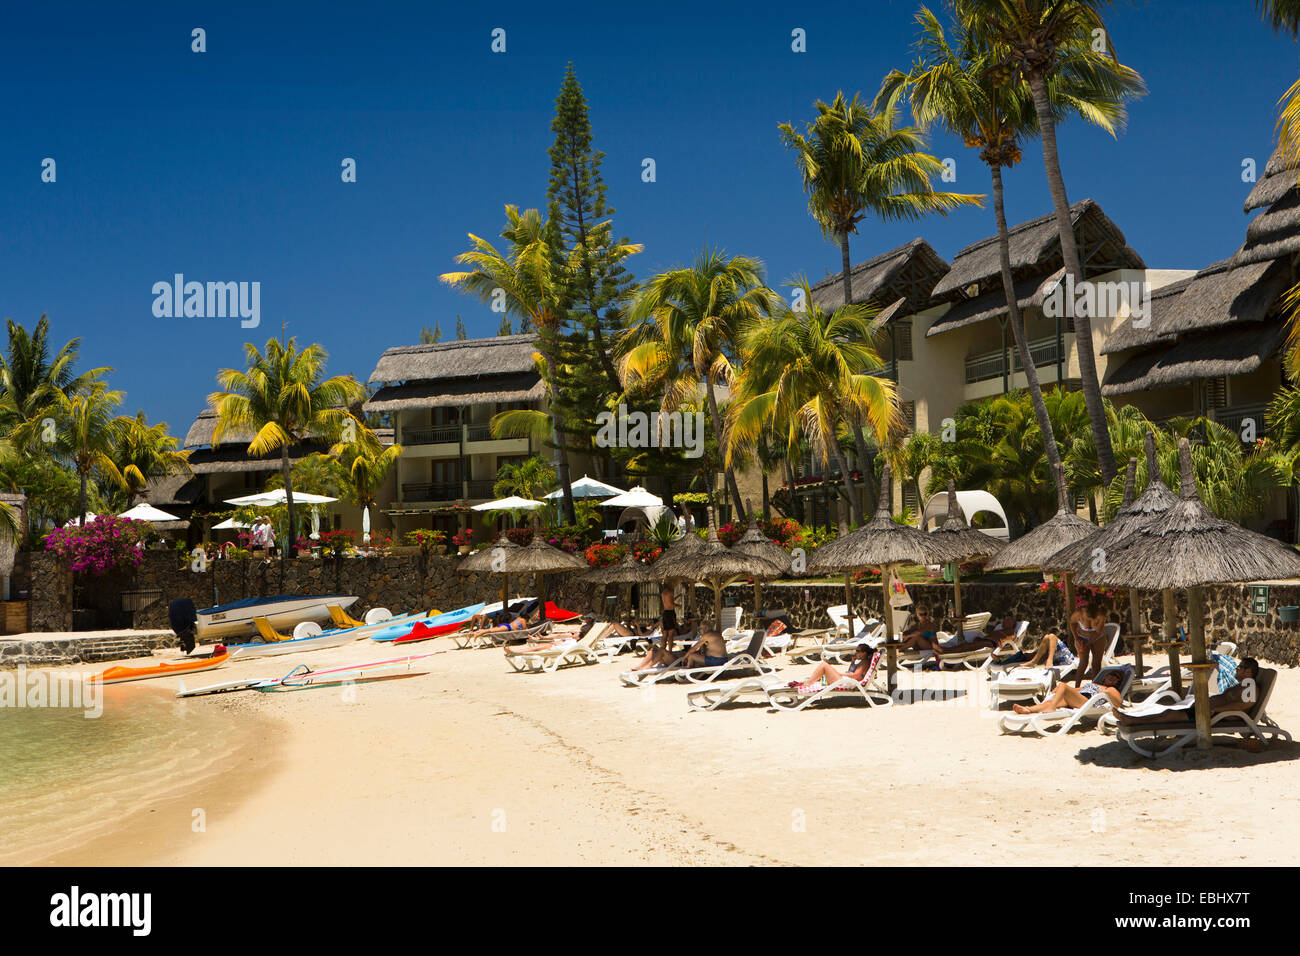 Mauritius, Grand Gaube tourists sunbathing on Veranda Paul et Virginie Hotel and spa beach - Stock Image